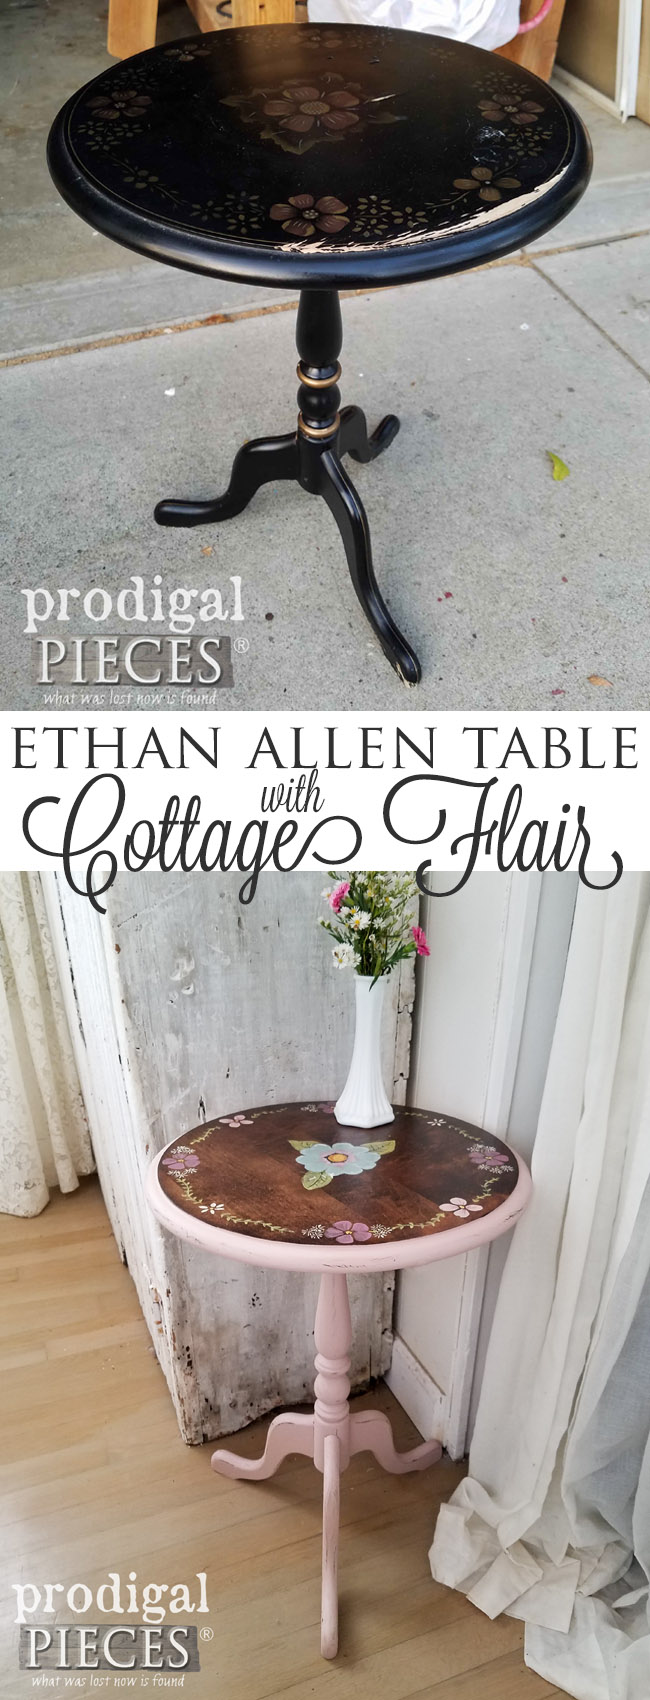 So pretty! This vintage Ethan Allen table was looking sad, but with some TLC it now sports cottage flair. Come see! by Prodigal Pieces | prodigalpieces.com